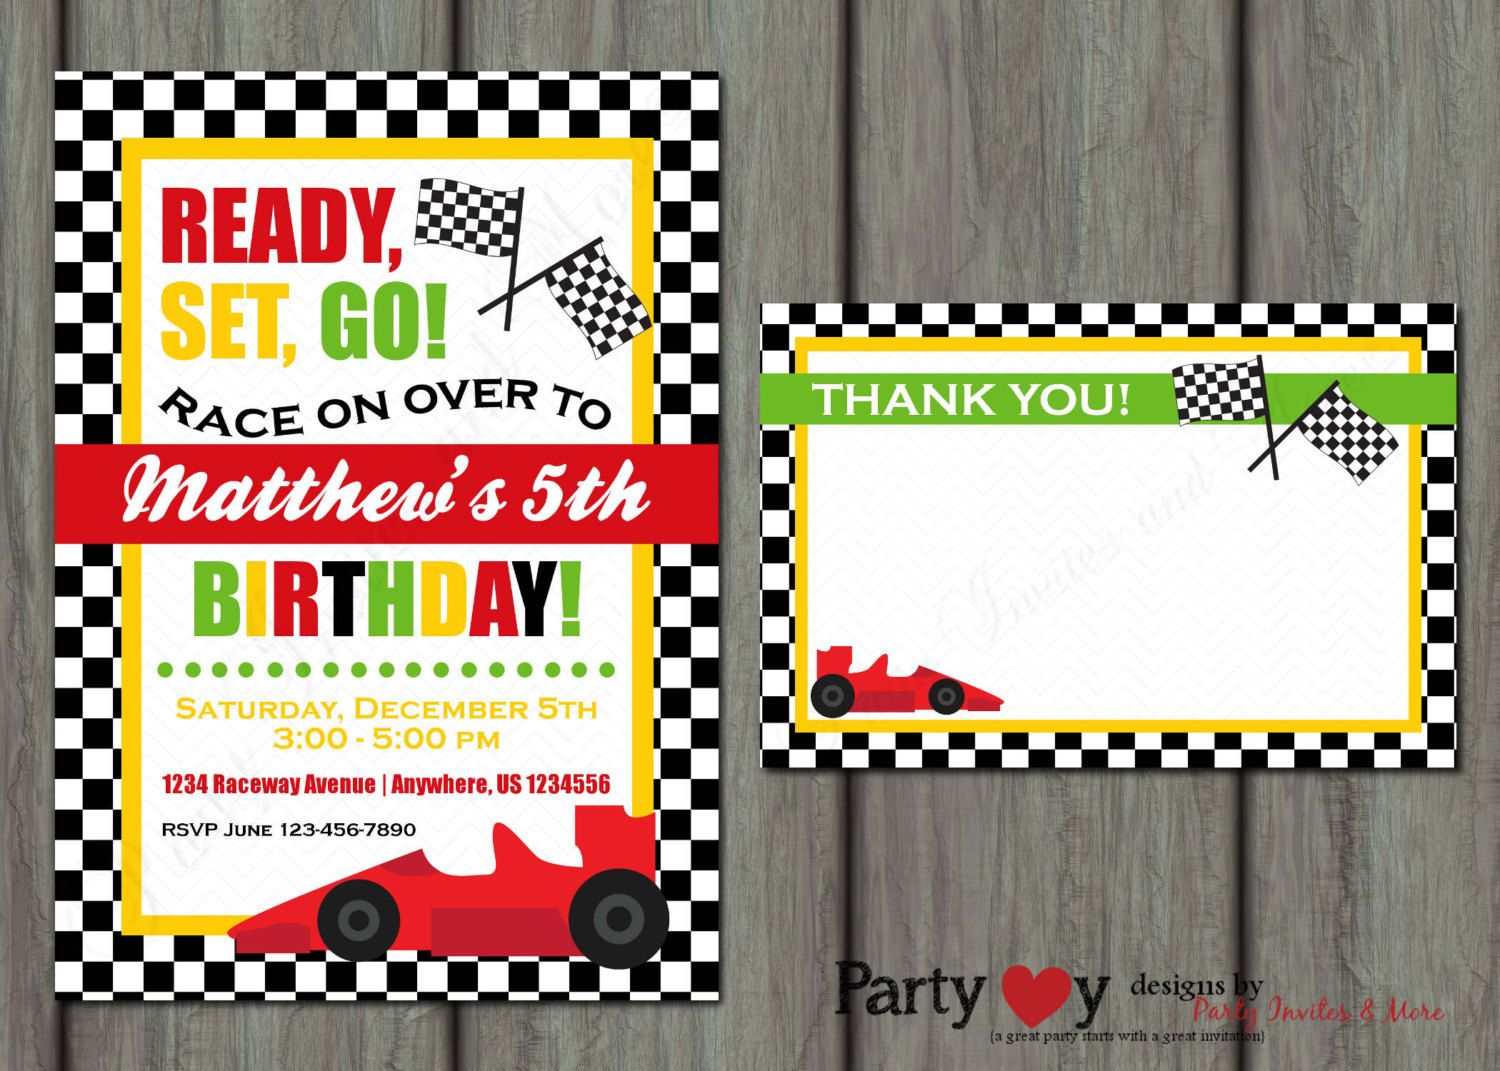 Cars Invitation Card Template Free: Pin By Ashlee Wellen On Elliot's 2nd Birthday